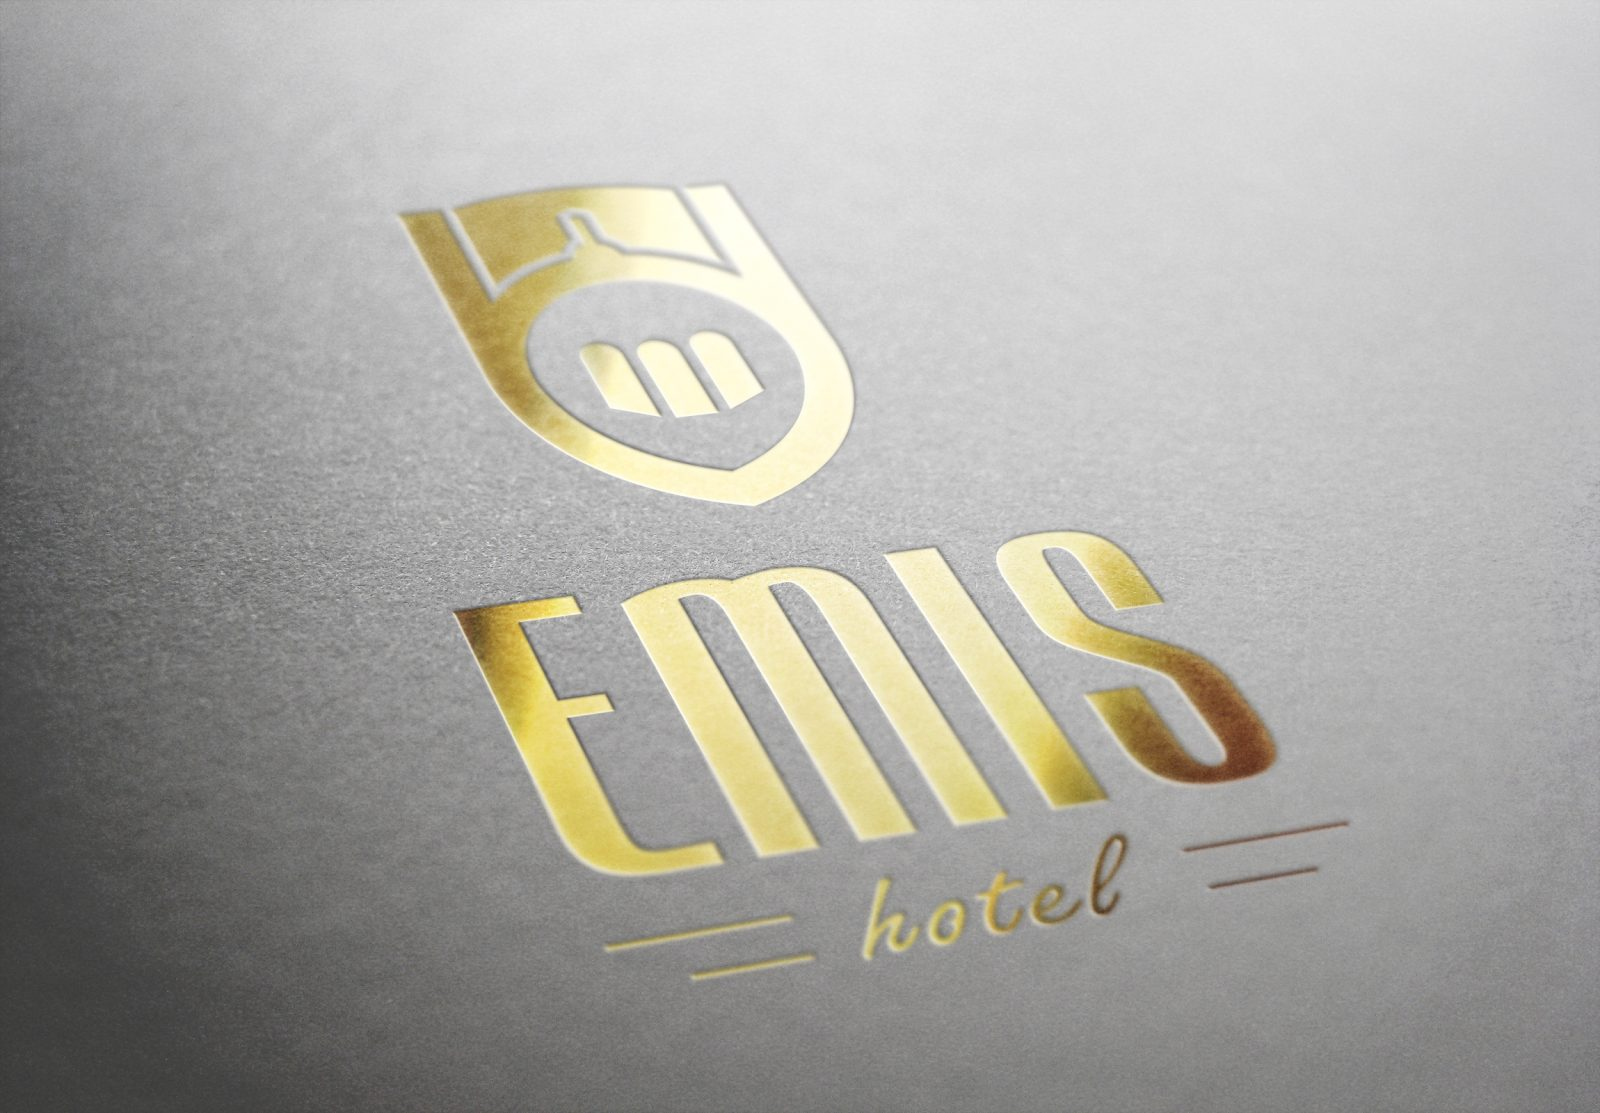 Luxury Gold 1600x1113 - Emis Hotel